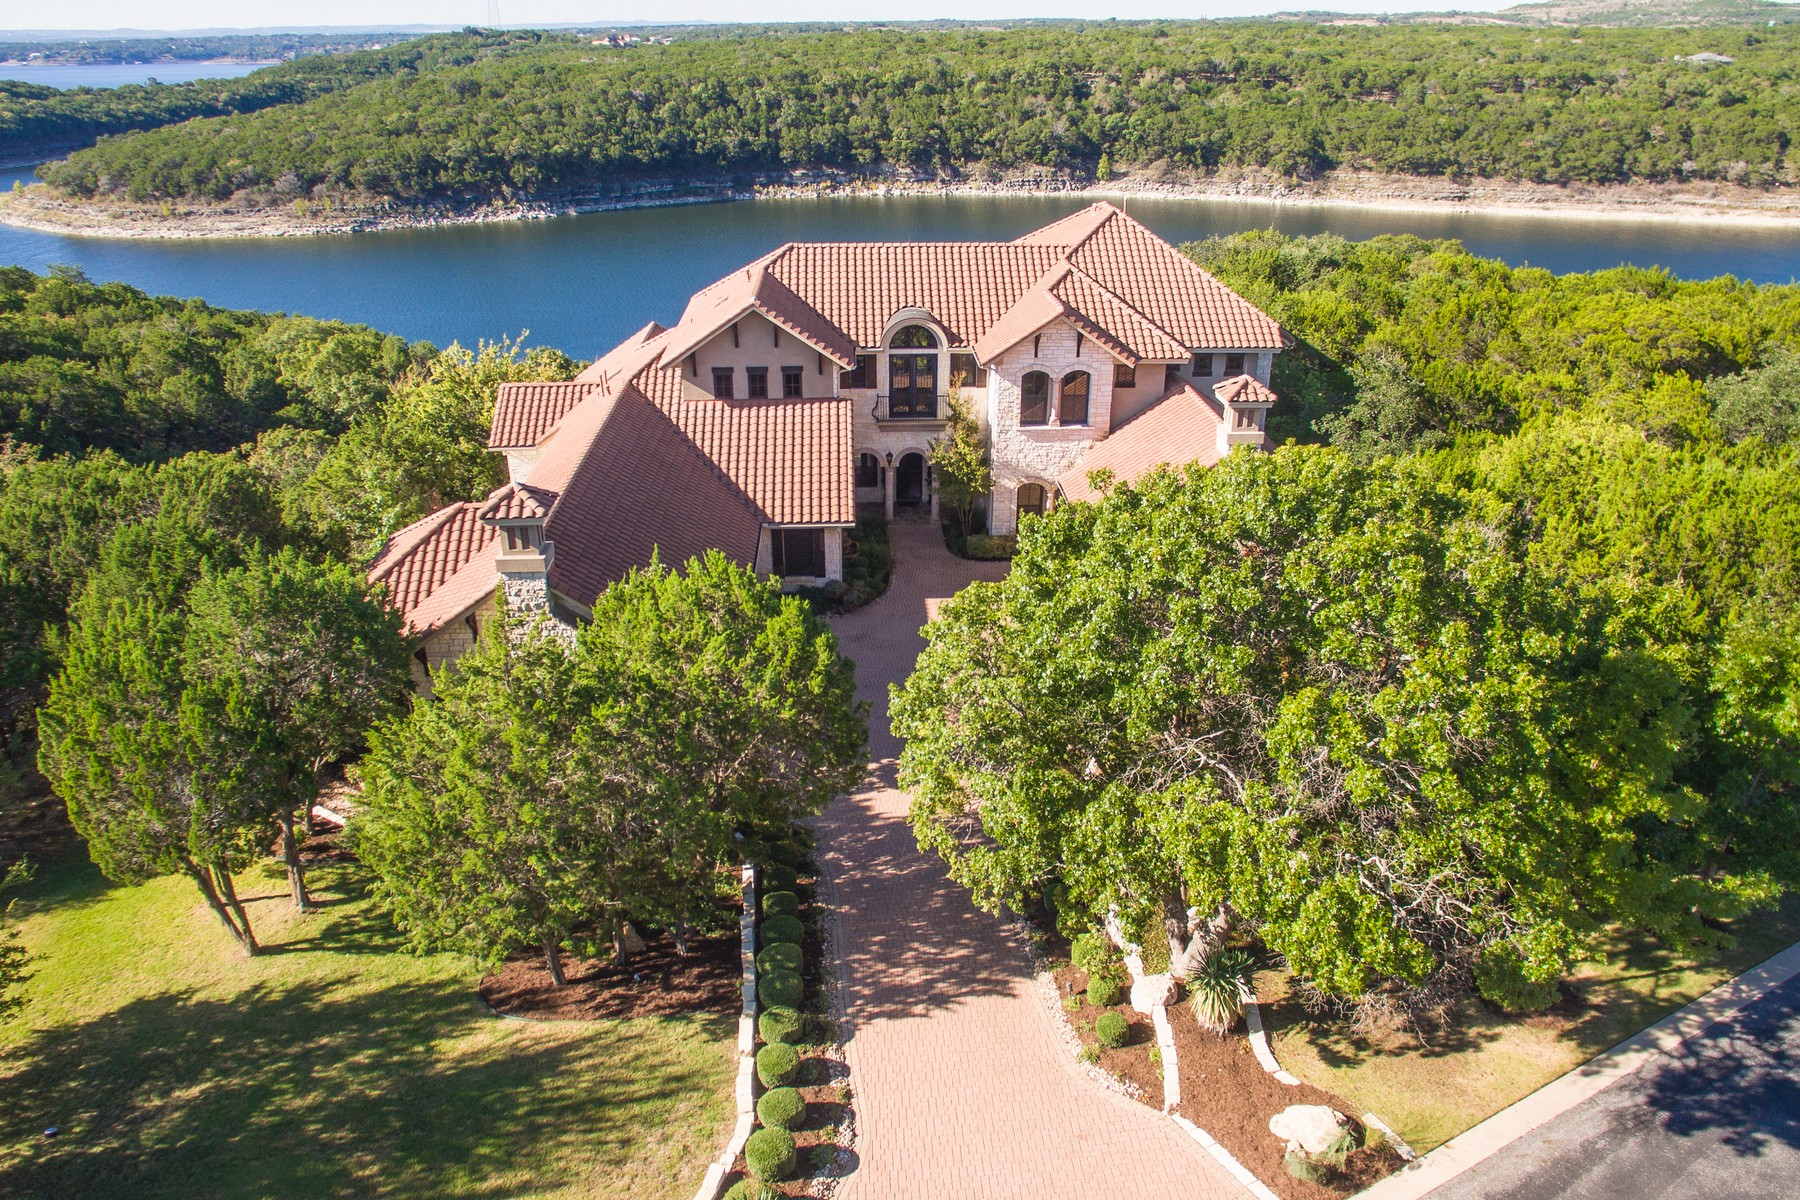 Single Family Home for Sale at French Chateau on 3.425 Acres and Lake Travis 17911 Breakwater Dr Jonestown, Texas 78645 United States